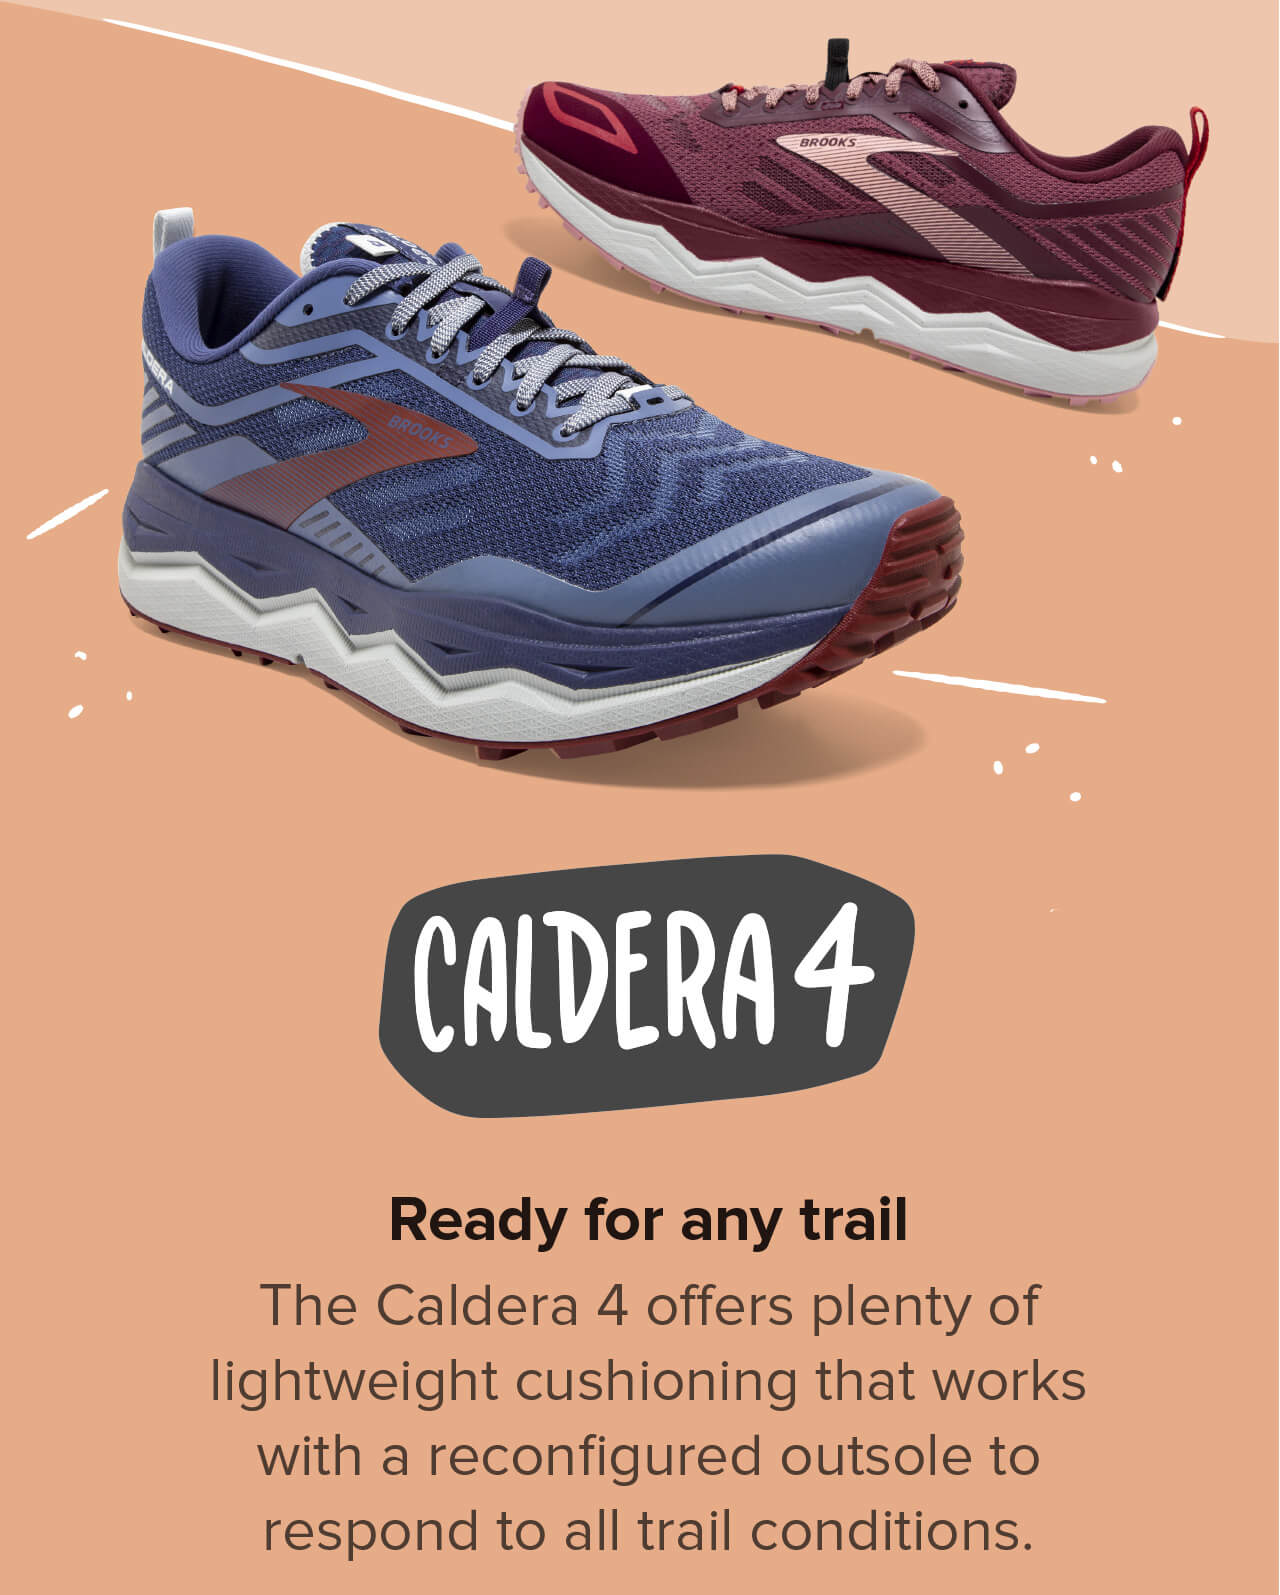 CALDERA 4   Ready for any trail. The Caldera 4 offers plenty of lightweight cushioning that works with a reconfigured outsole to respond to all trail conditions.